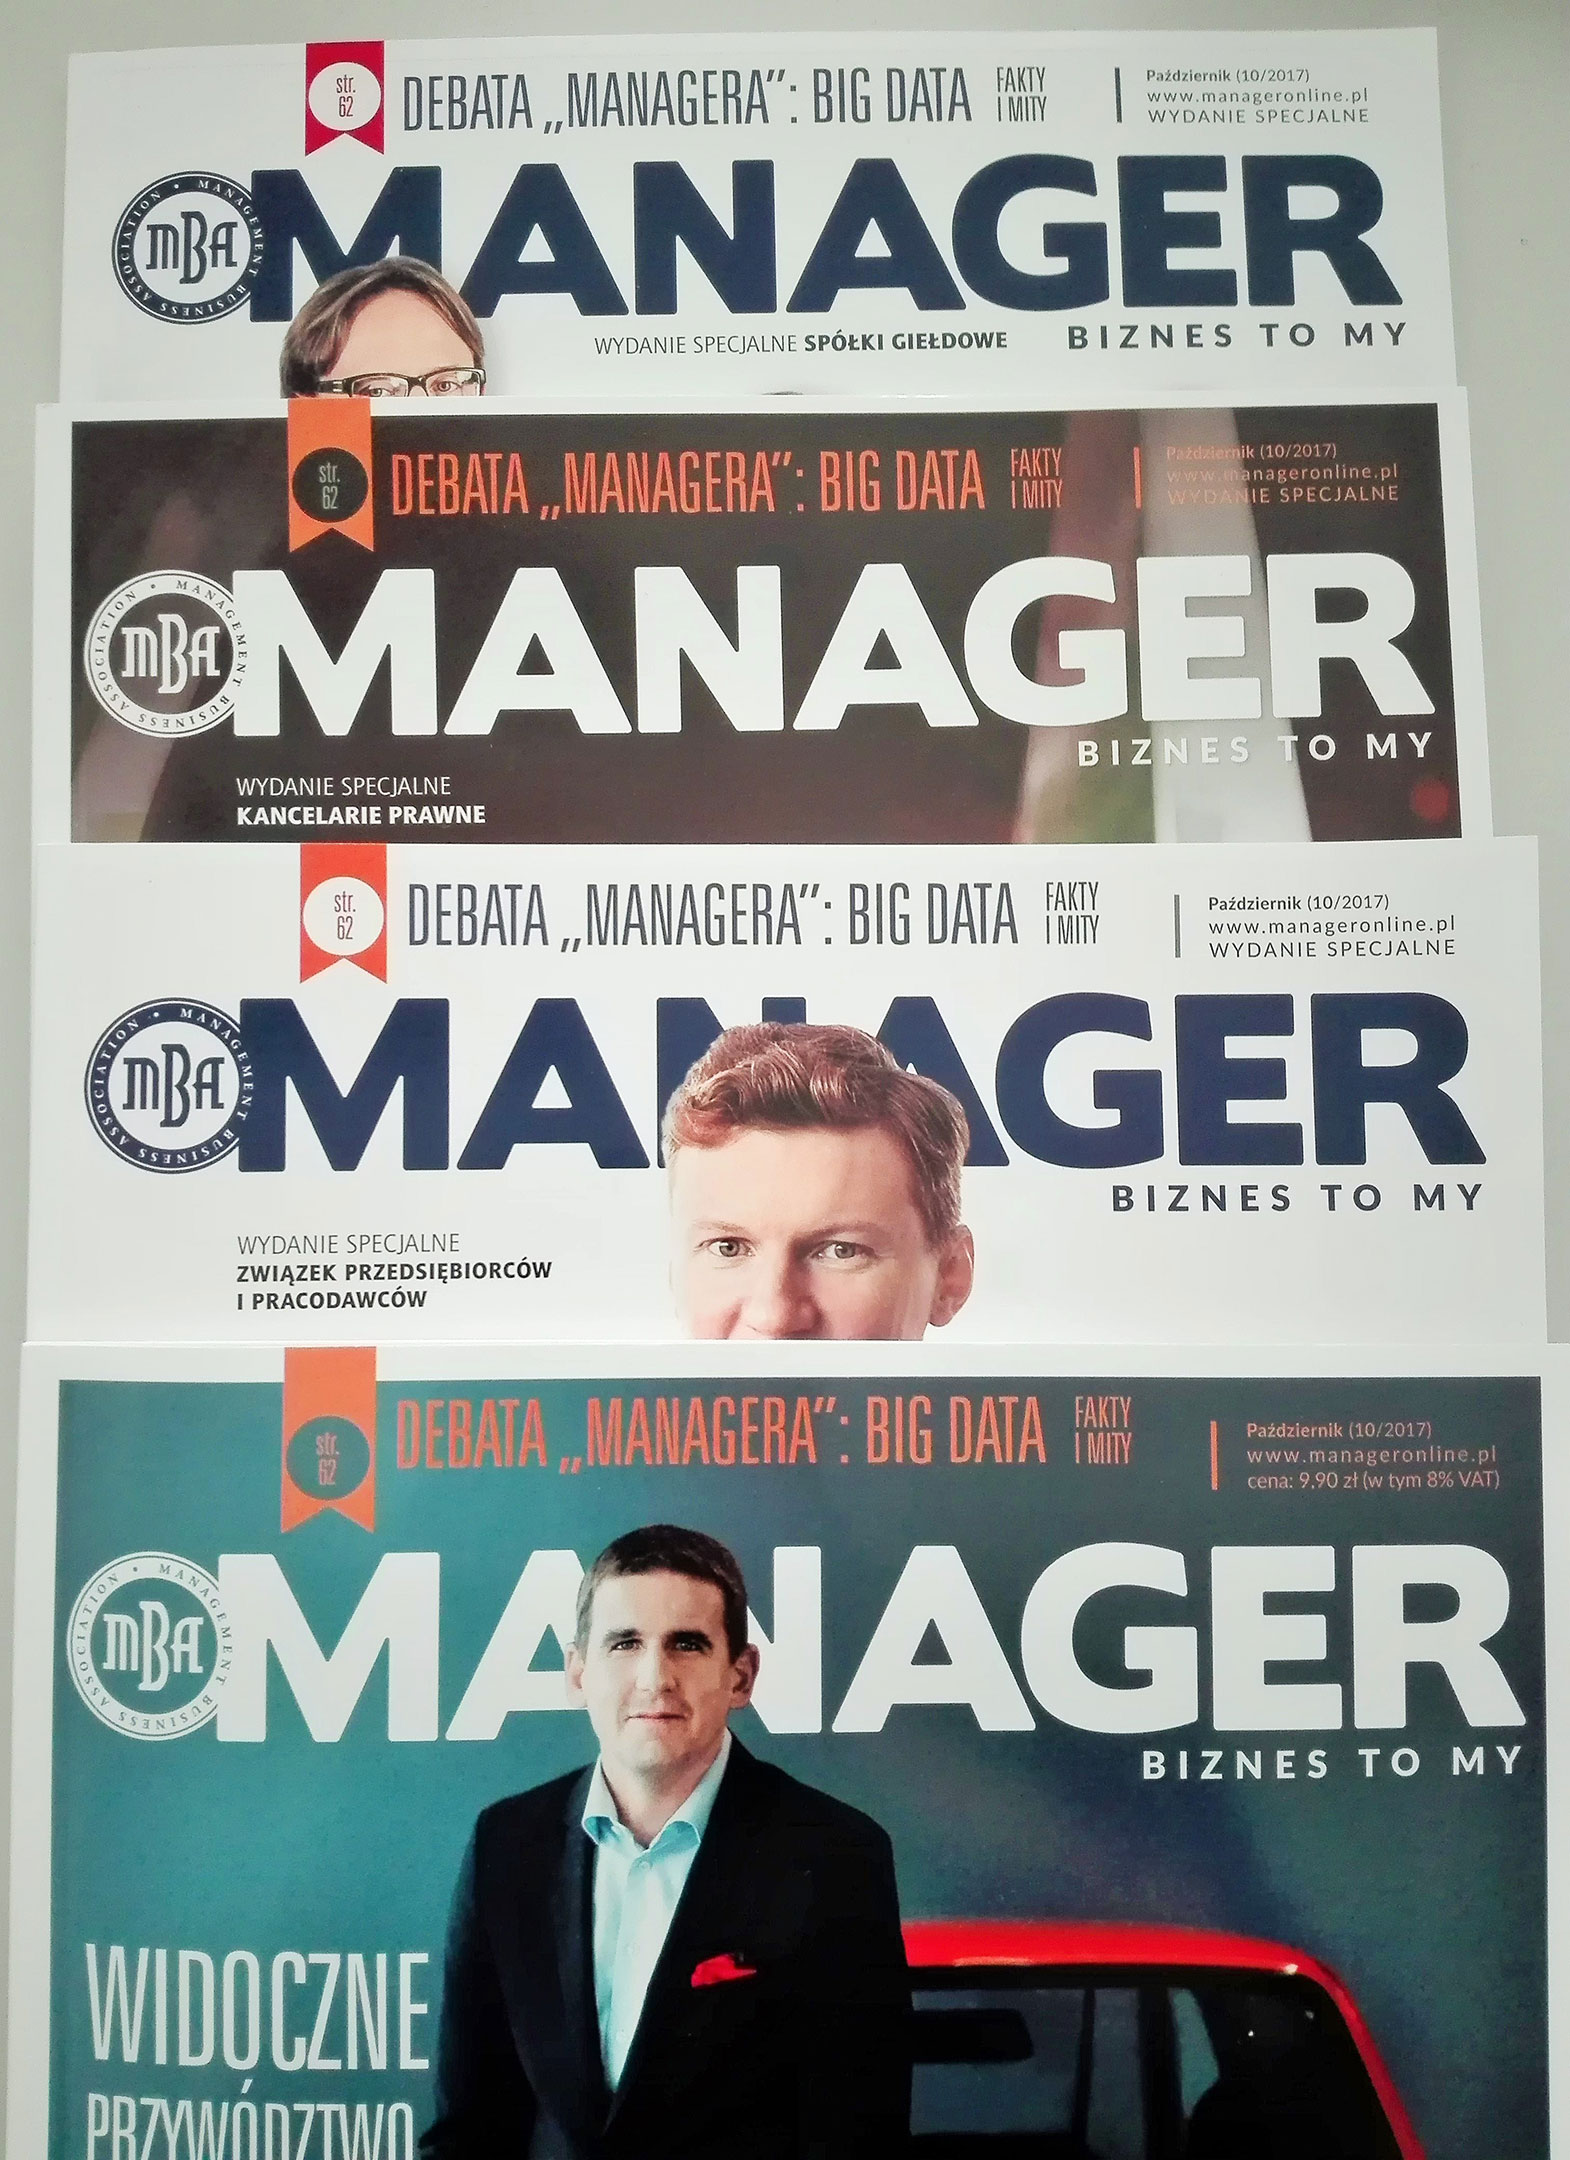 GFKM Manager